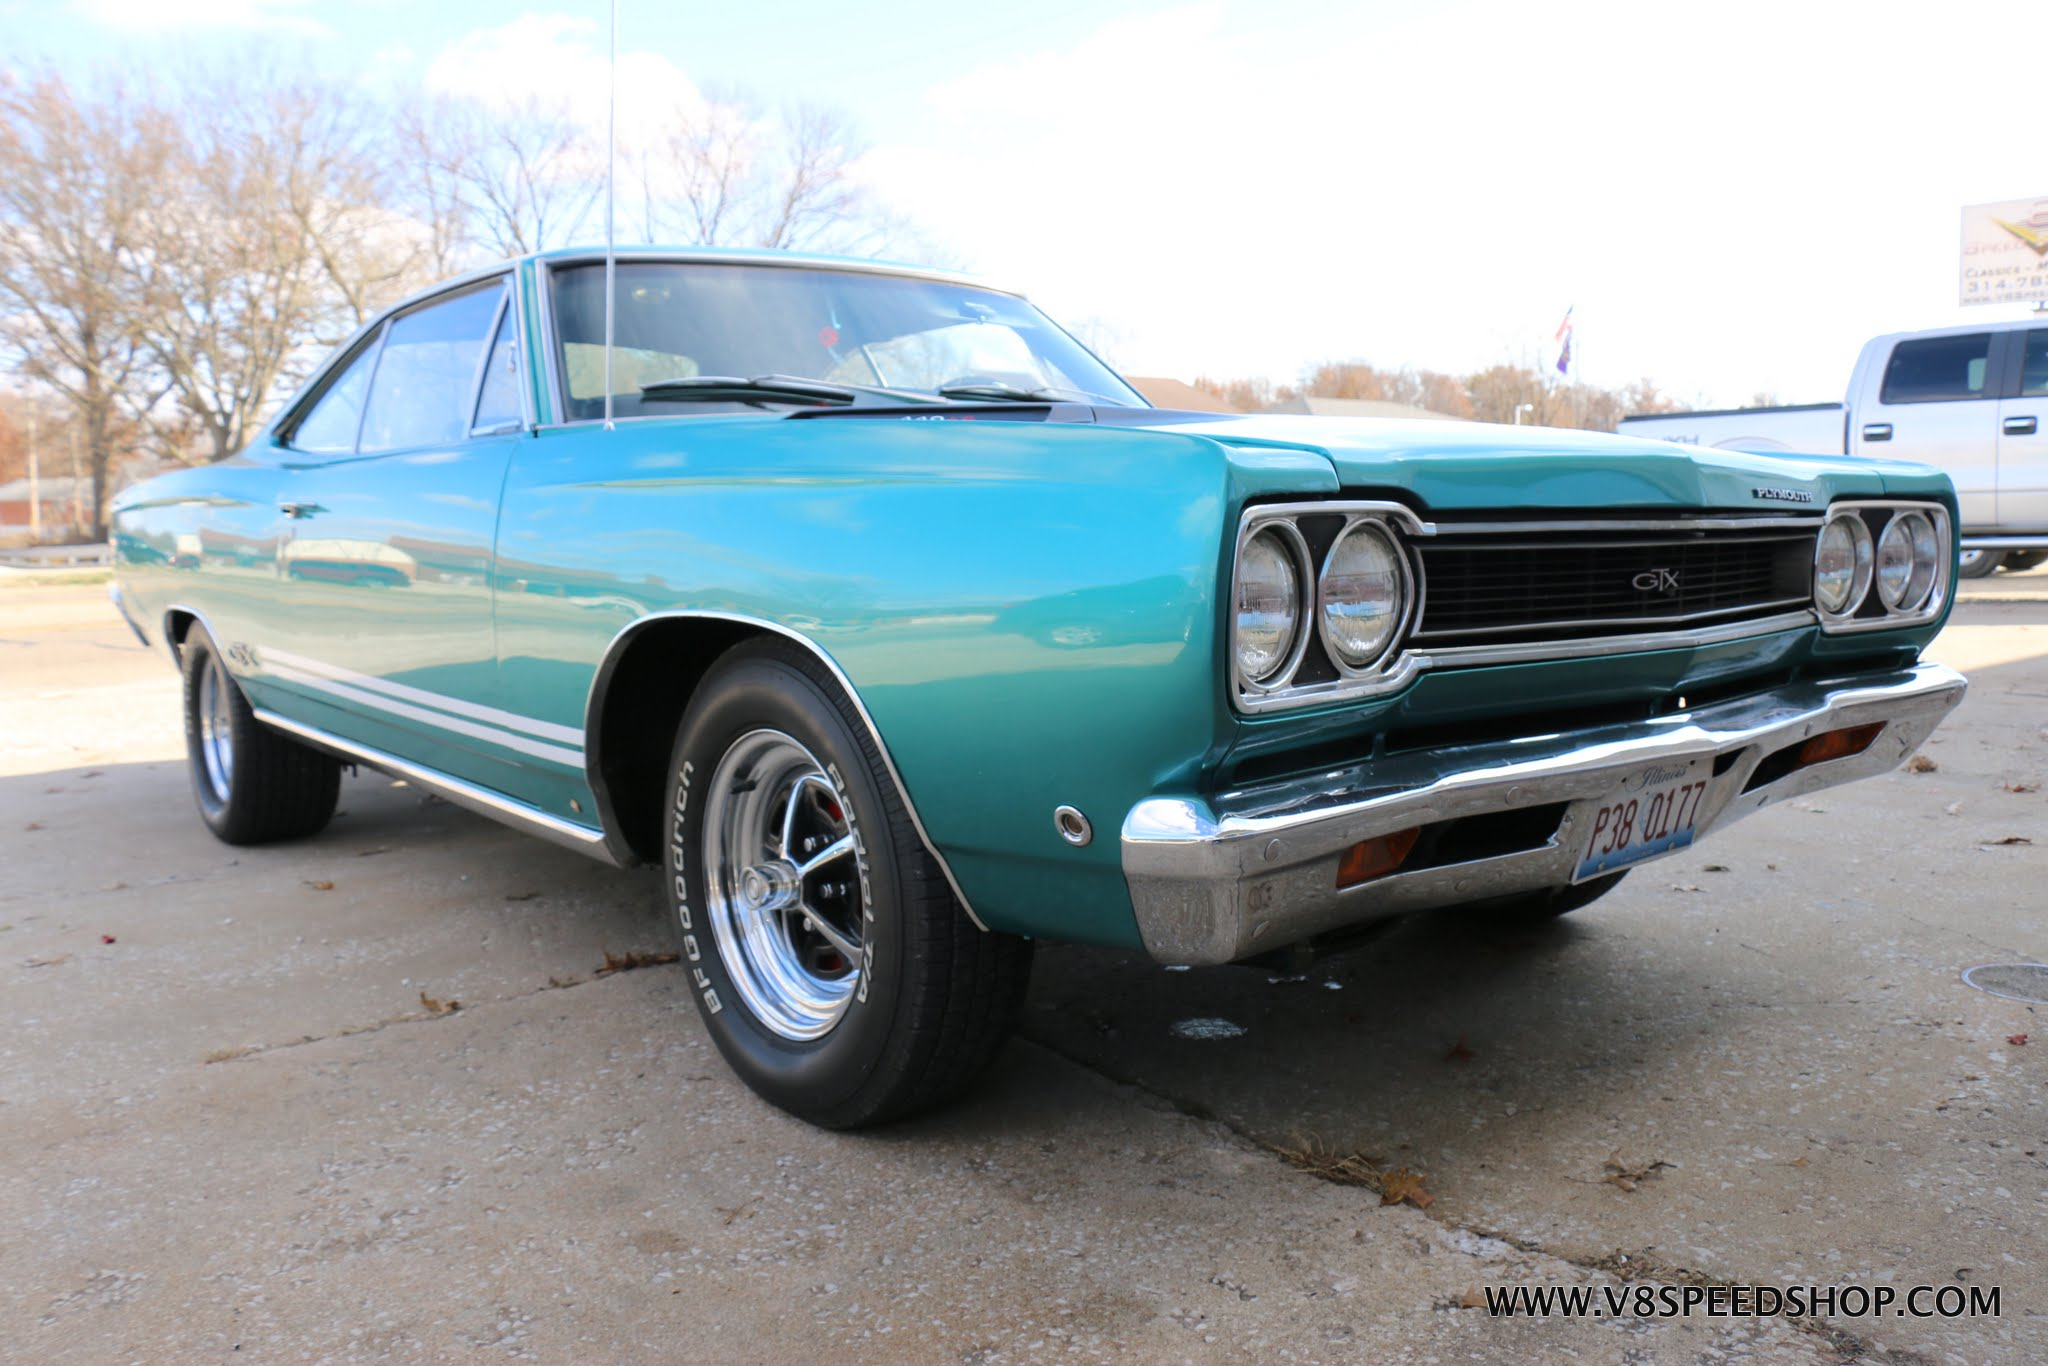 1968 Plymouth GTX at V8 Speed & Resto Shop